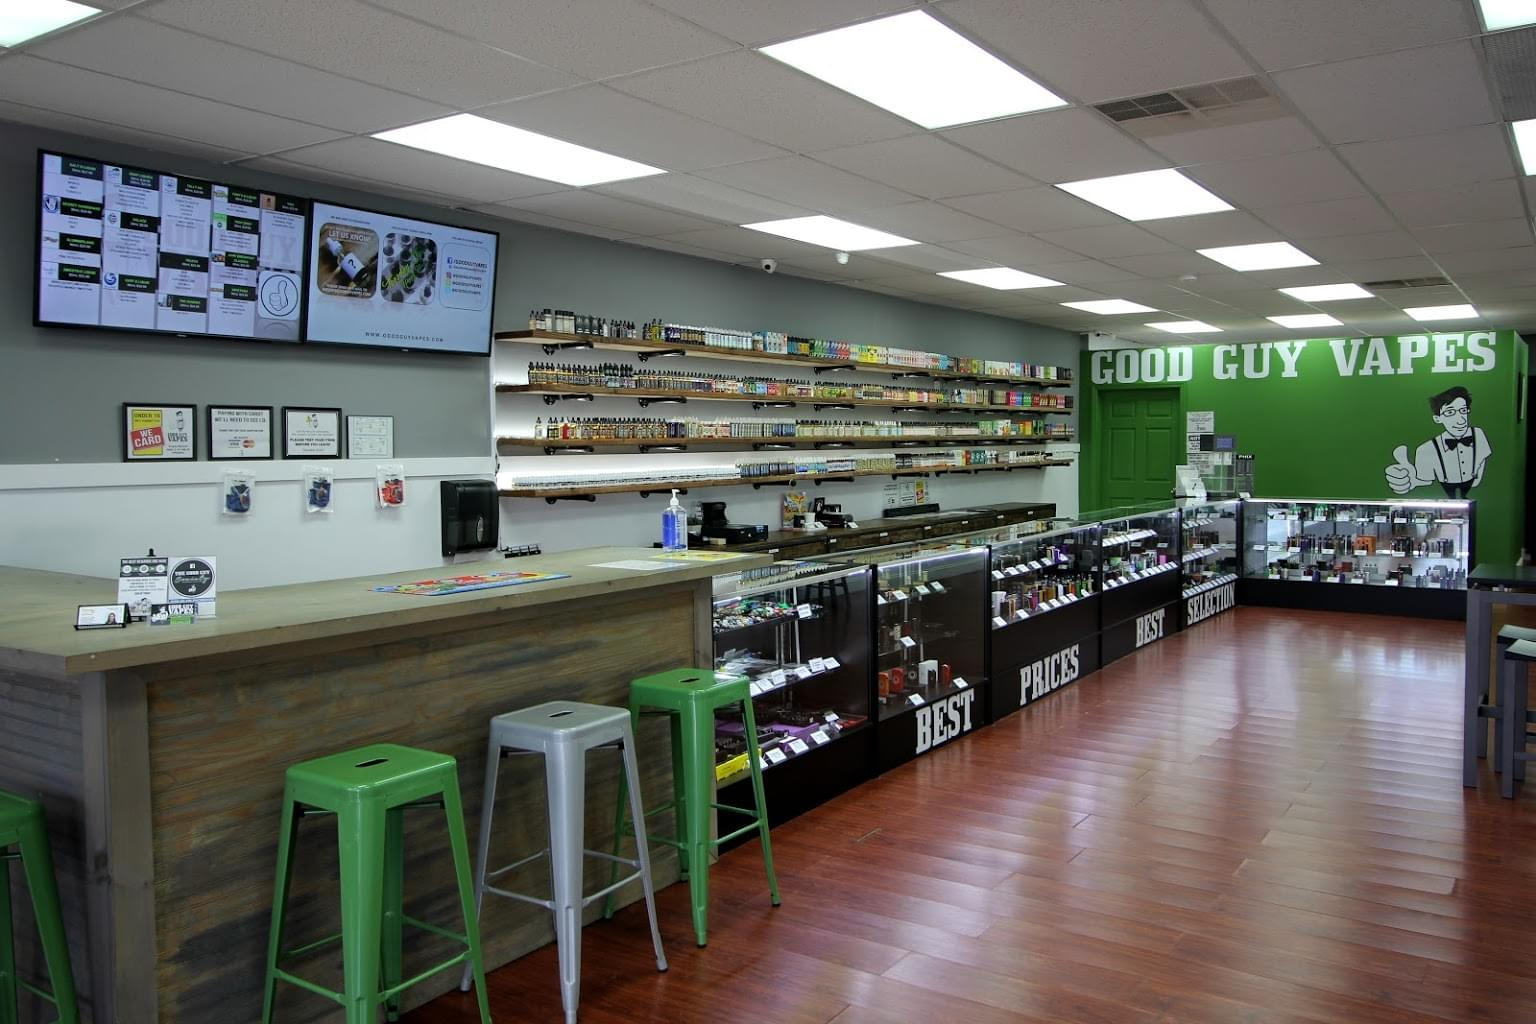 Good Guy Vapes – Rockaway, NJ – See-Inside Vaporizer Store